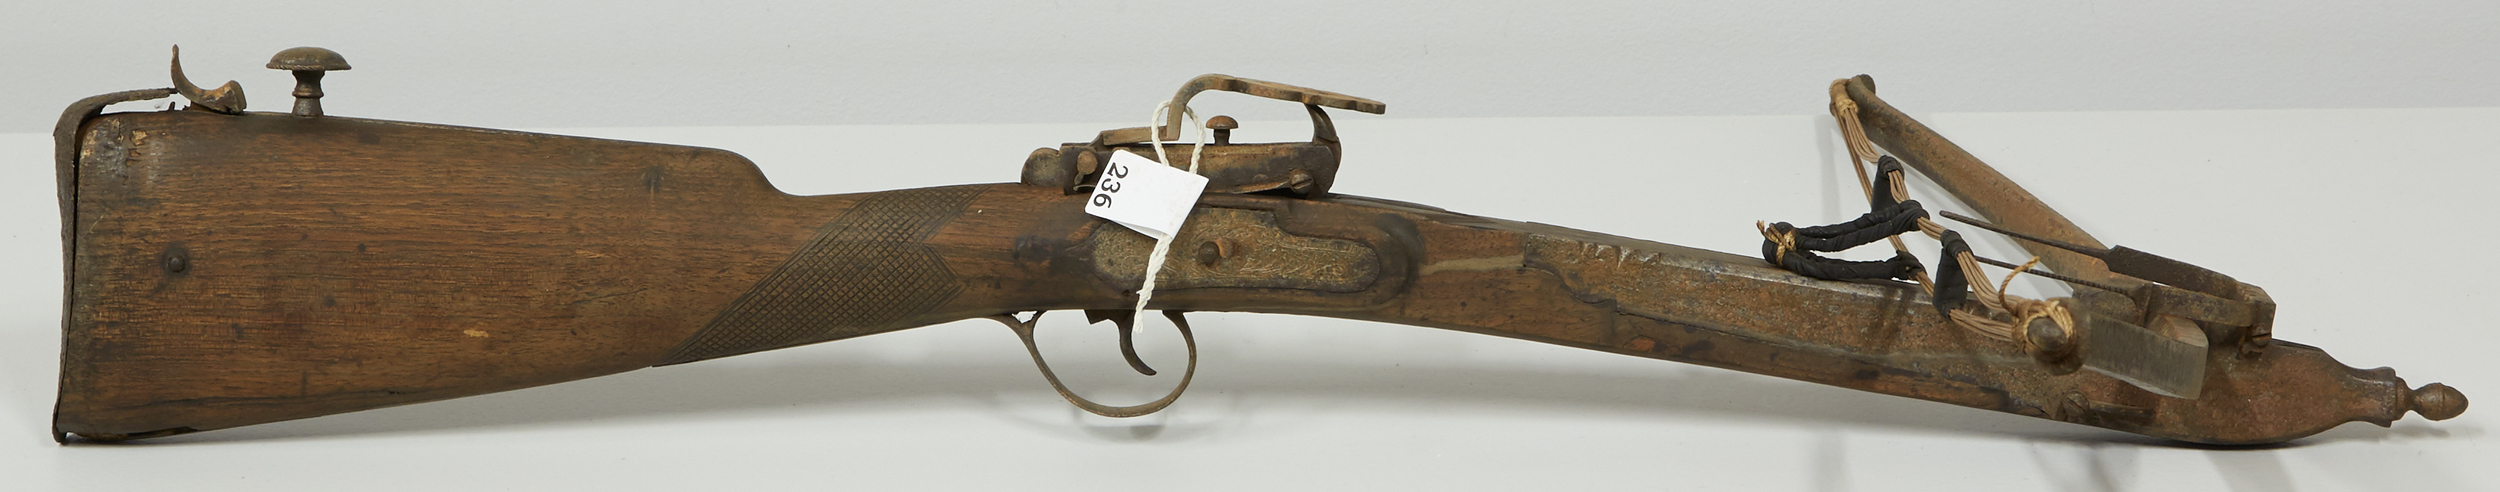 Before waxing: antique crossbow